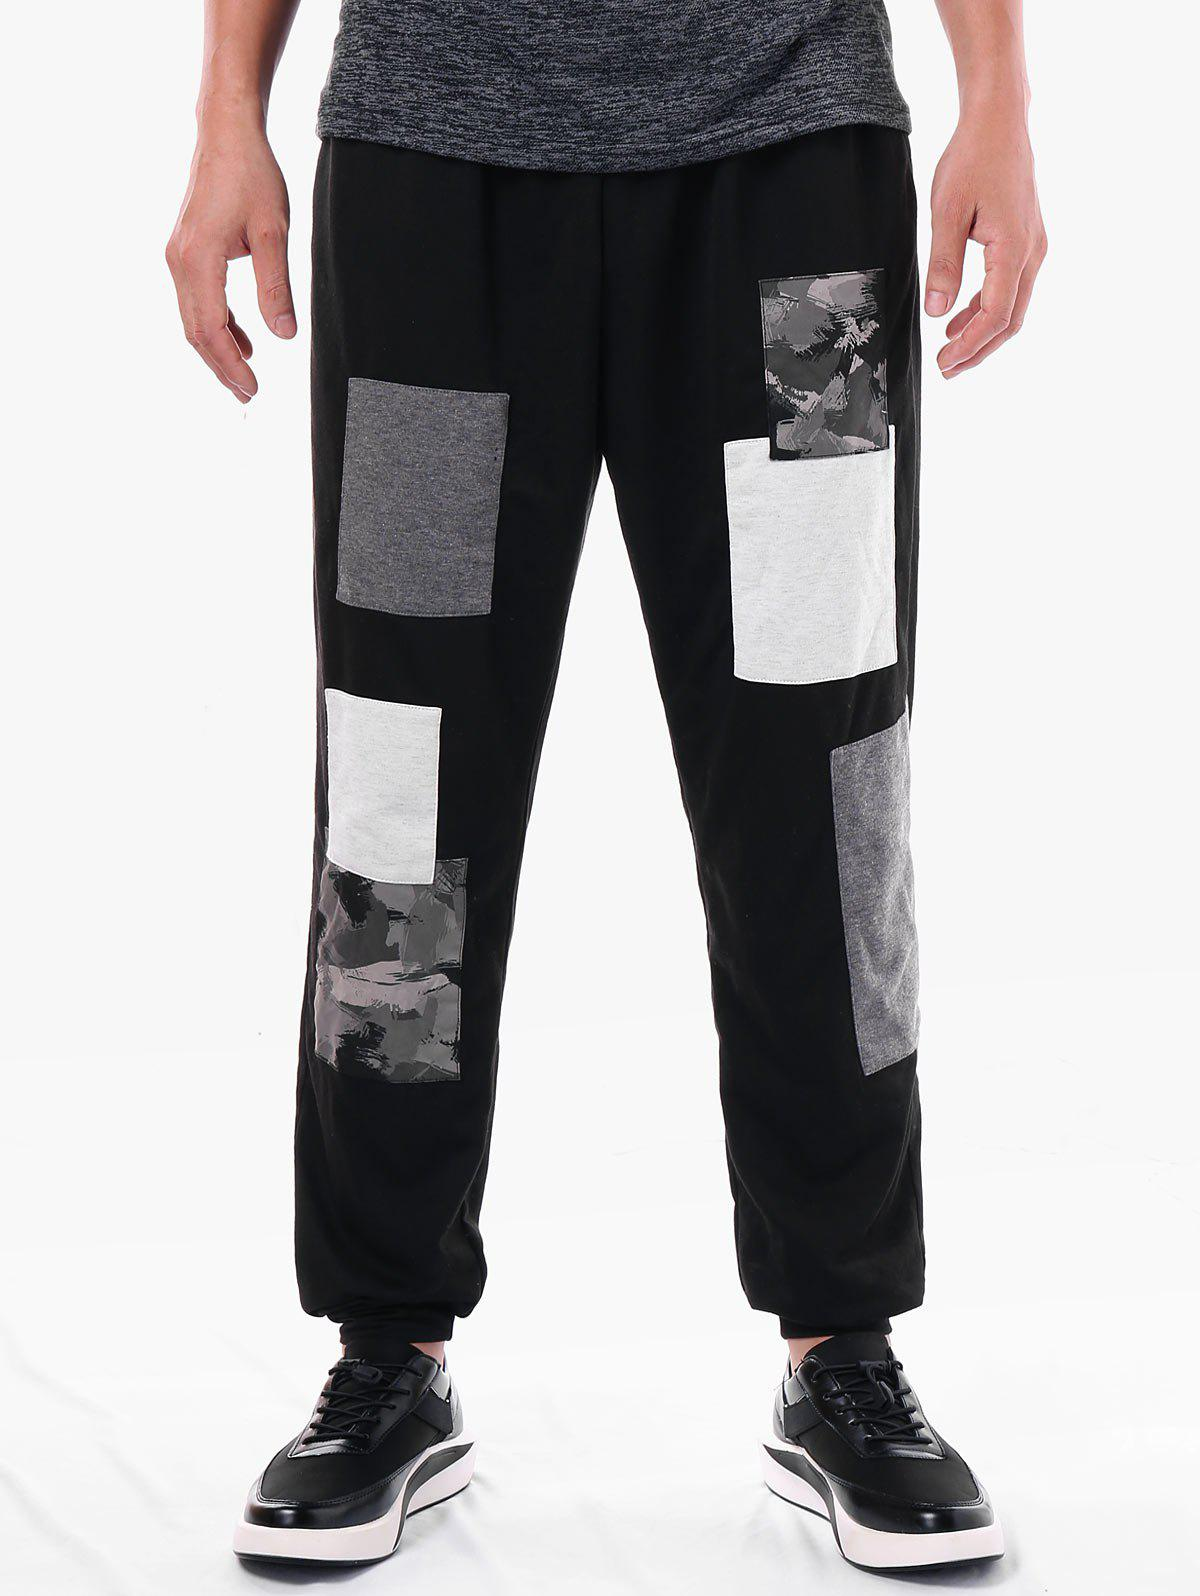 Narrow Feet Paint Print Panel Casual Pants - BLACK 2XL